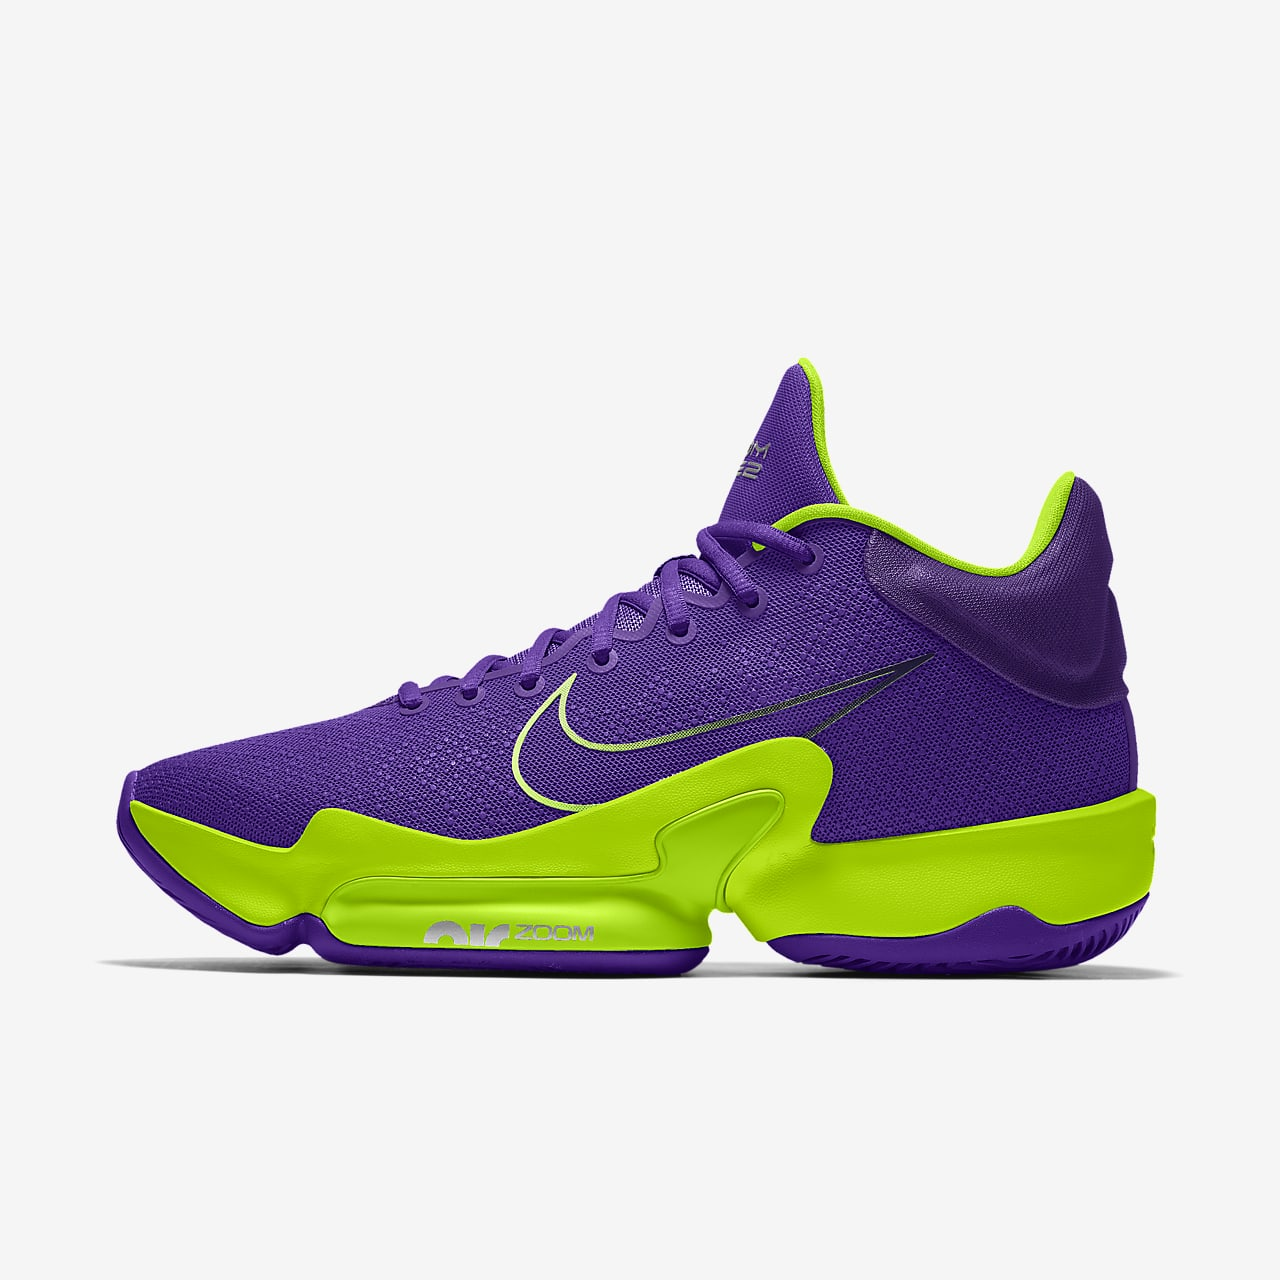 Nike Zoom Rize 2 By You personalisierbarer Basketballschuh